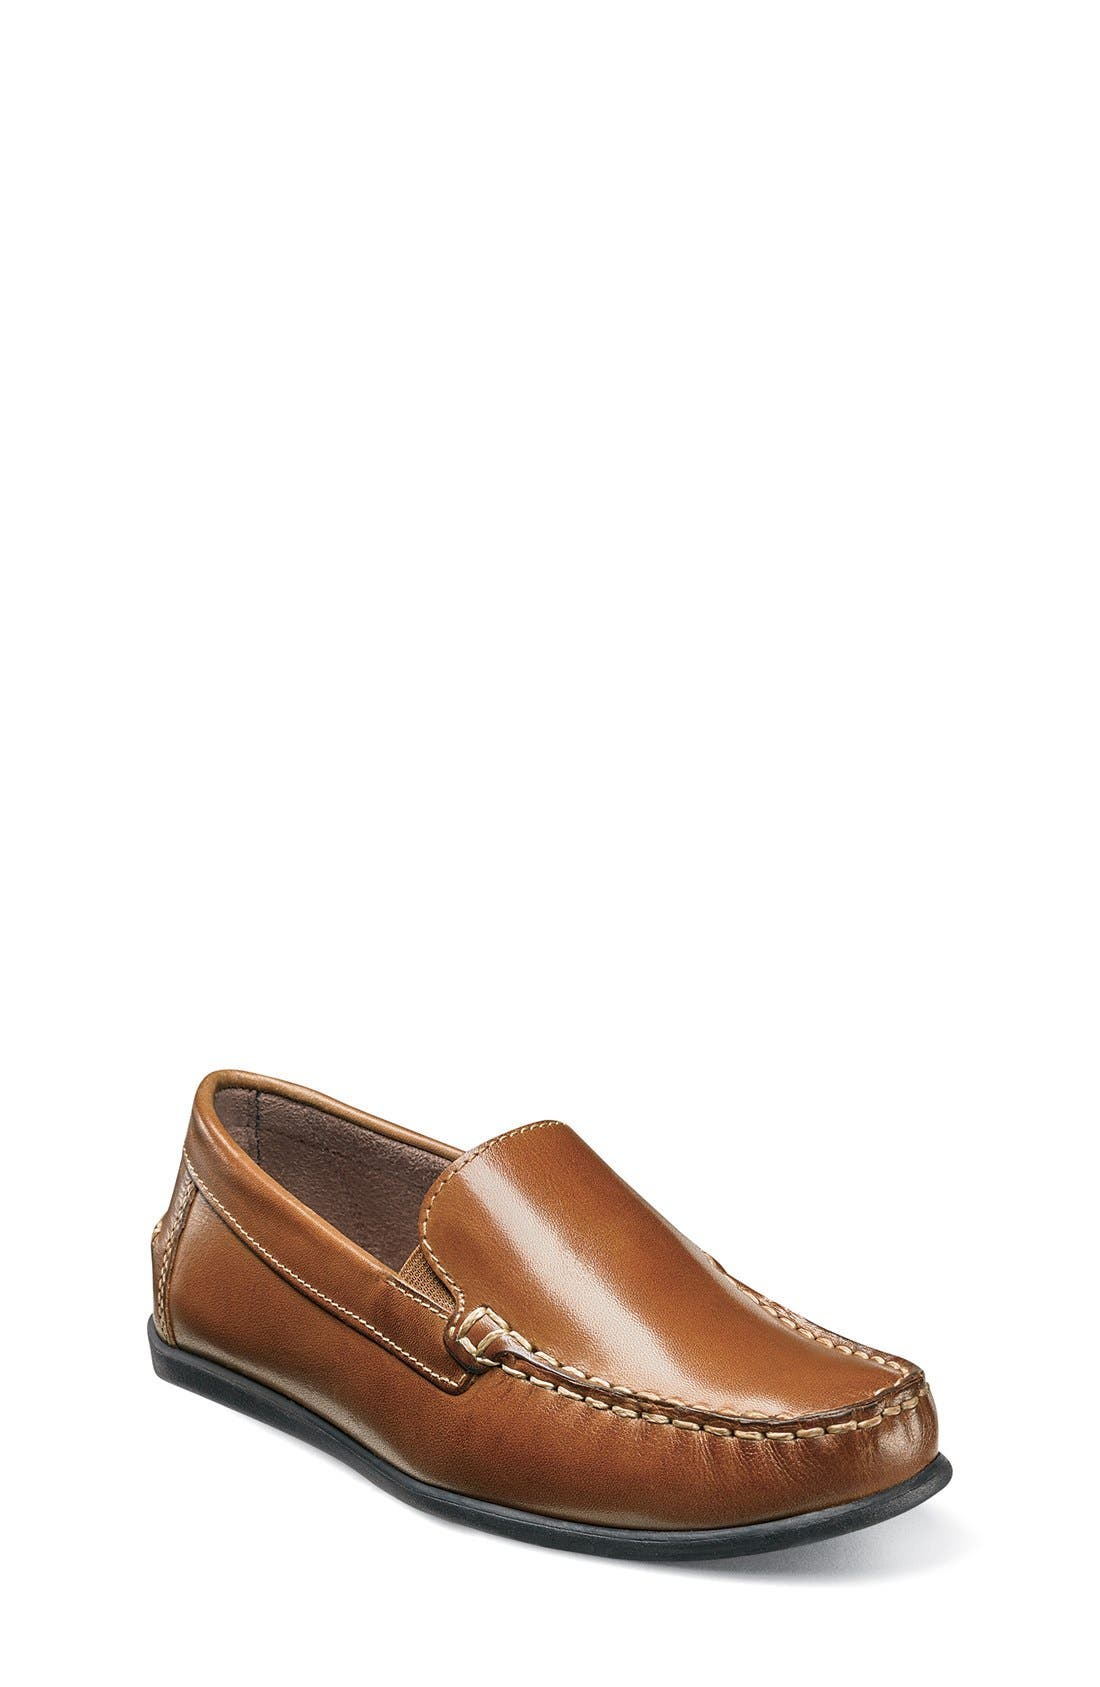 'Jasper - Venetian Jr.' Loafer,                         Main,                         color, Saddle Tan Leather